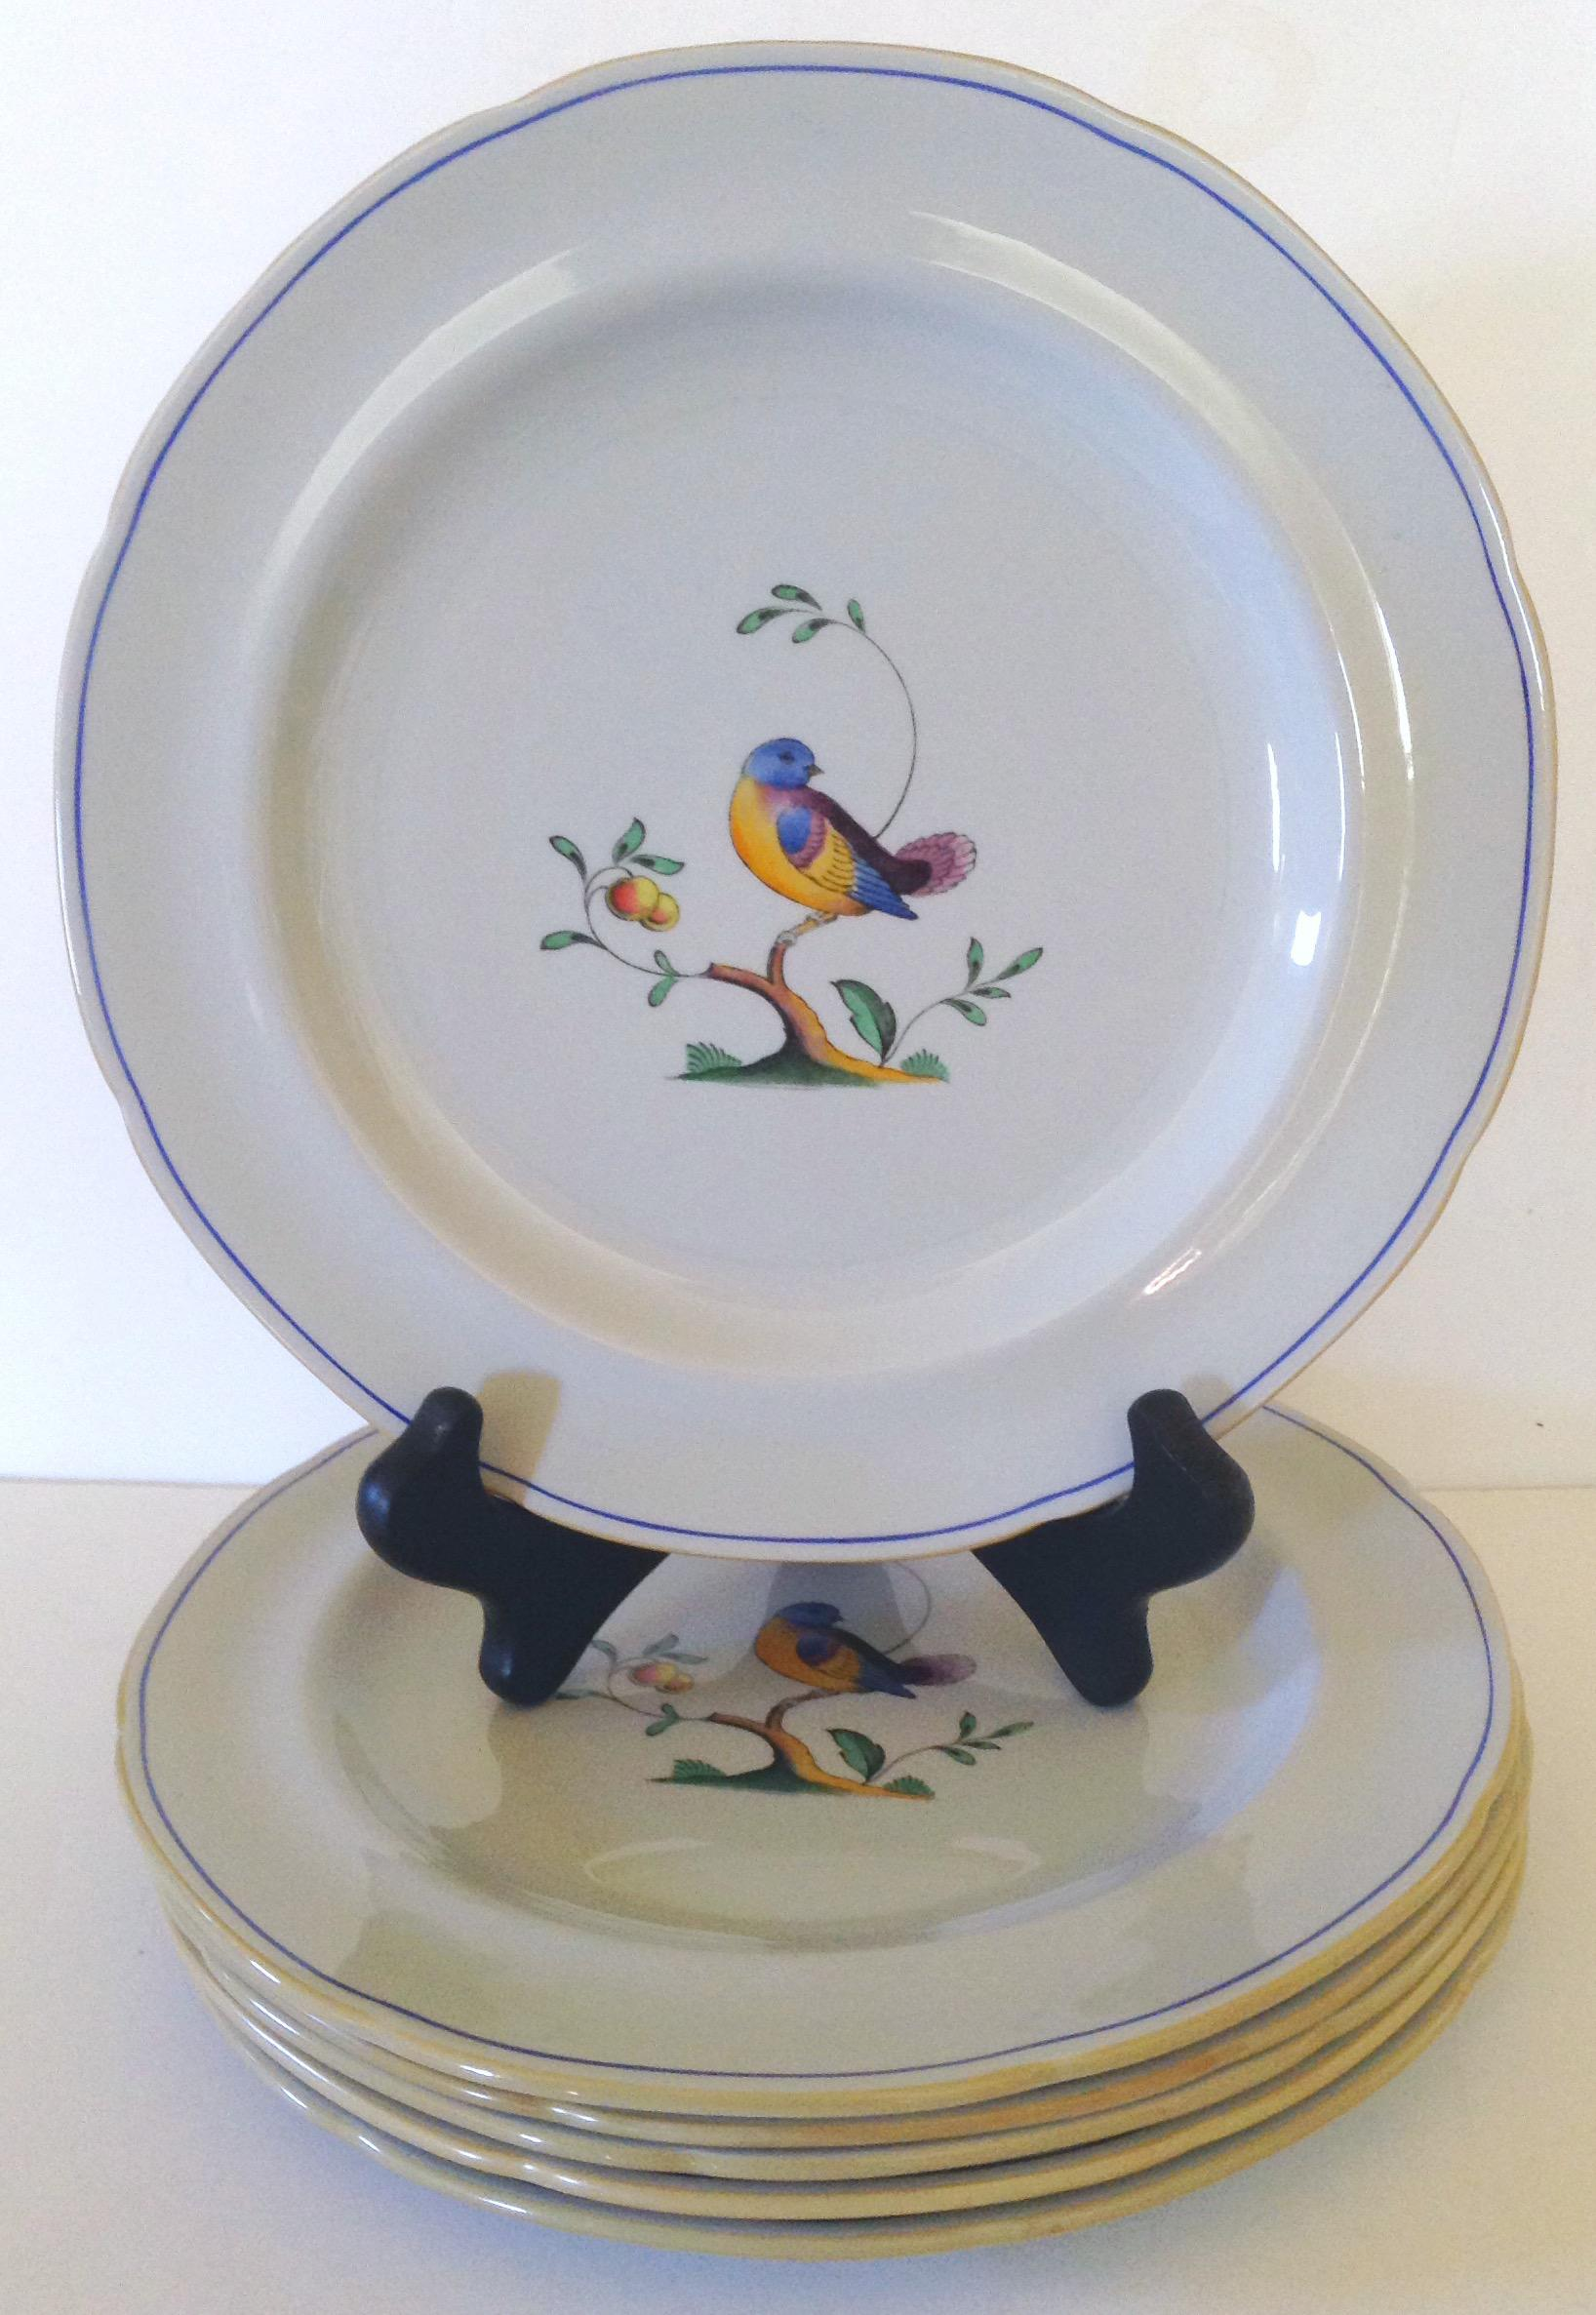 Spode Queenu0027s Bird Plates - Set of 6 - Image 2 ...  sc 1 st  Chairish & Spode Queenu0027s Bird Plates - Set of 6 | Chairish